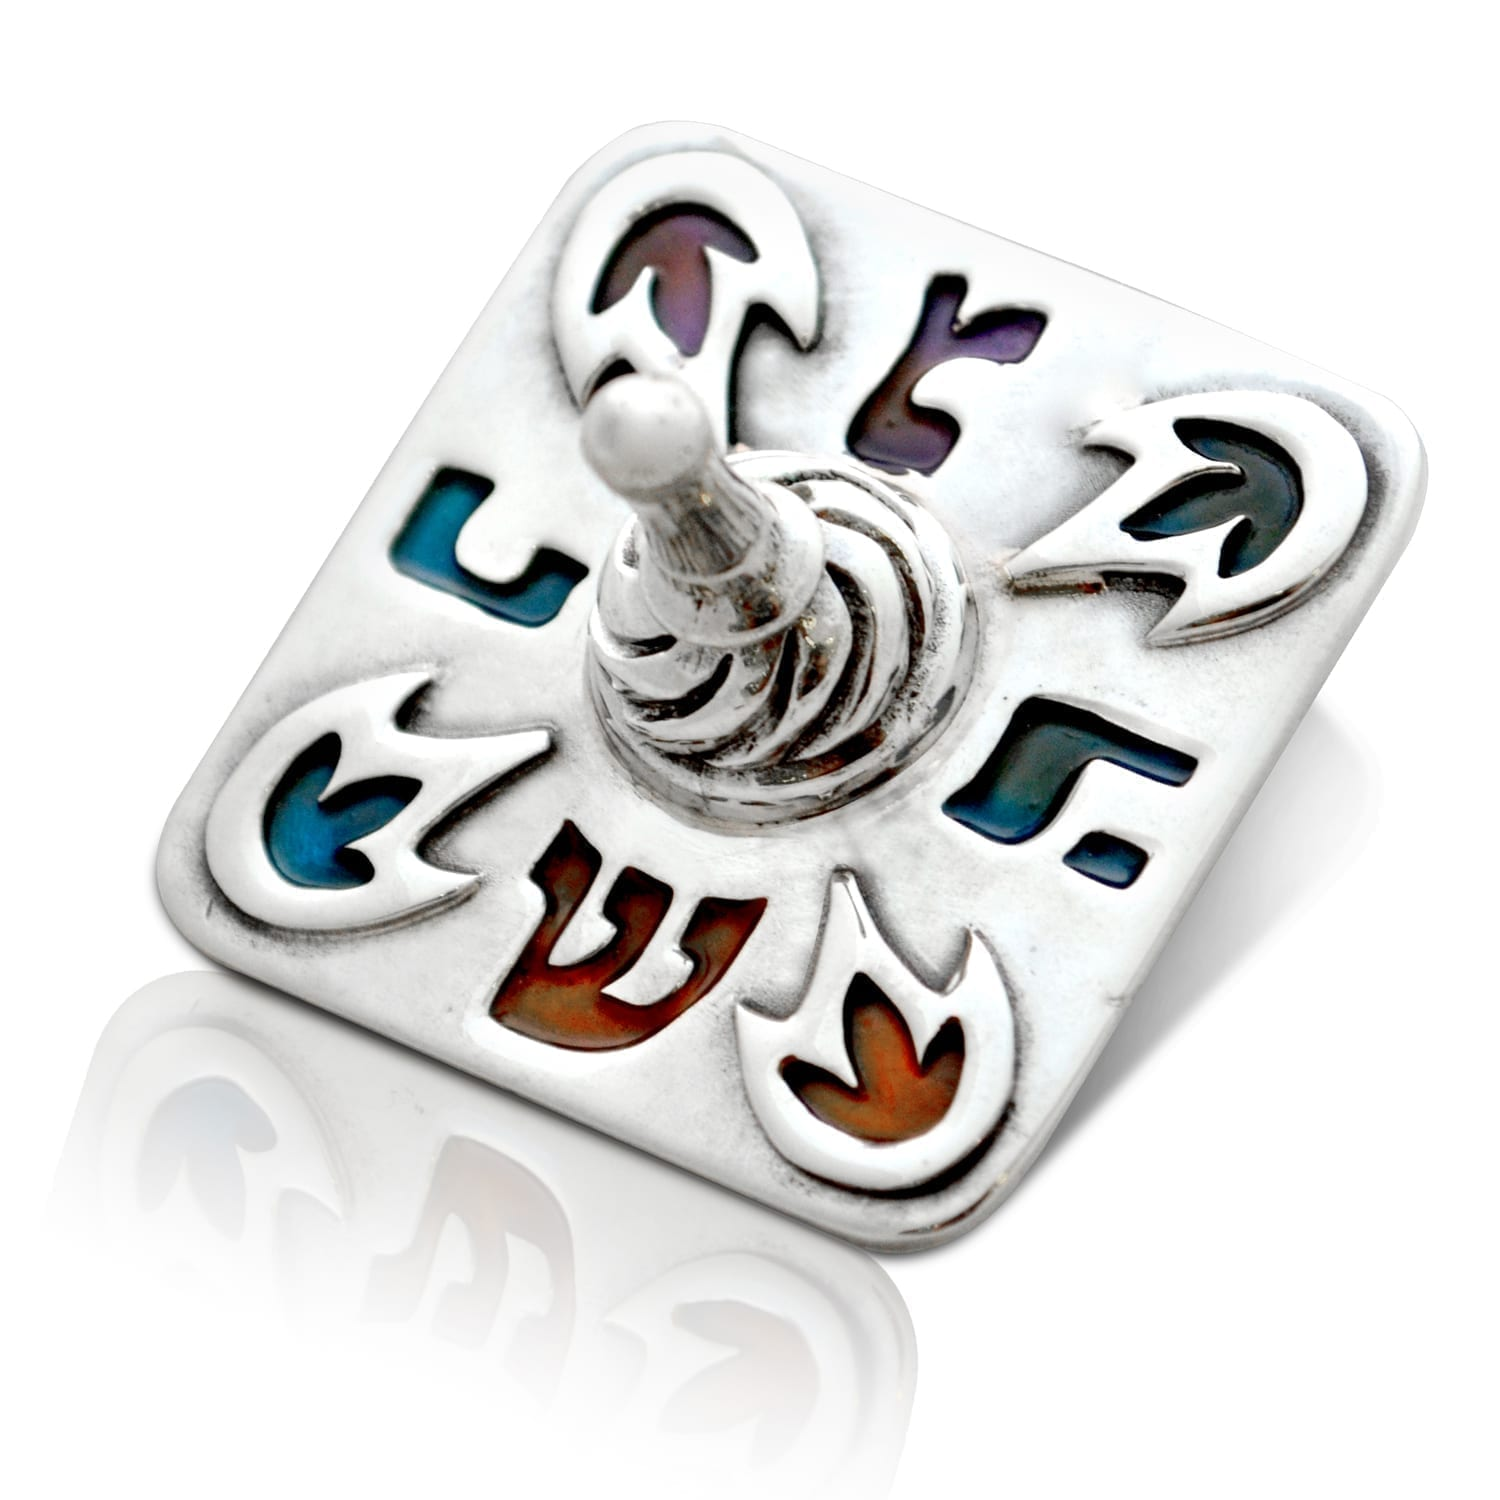 Sterling silver flat dreidel with cut-out colorful enamel deisgns. Hannukah Judaica gifts made in Israel